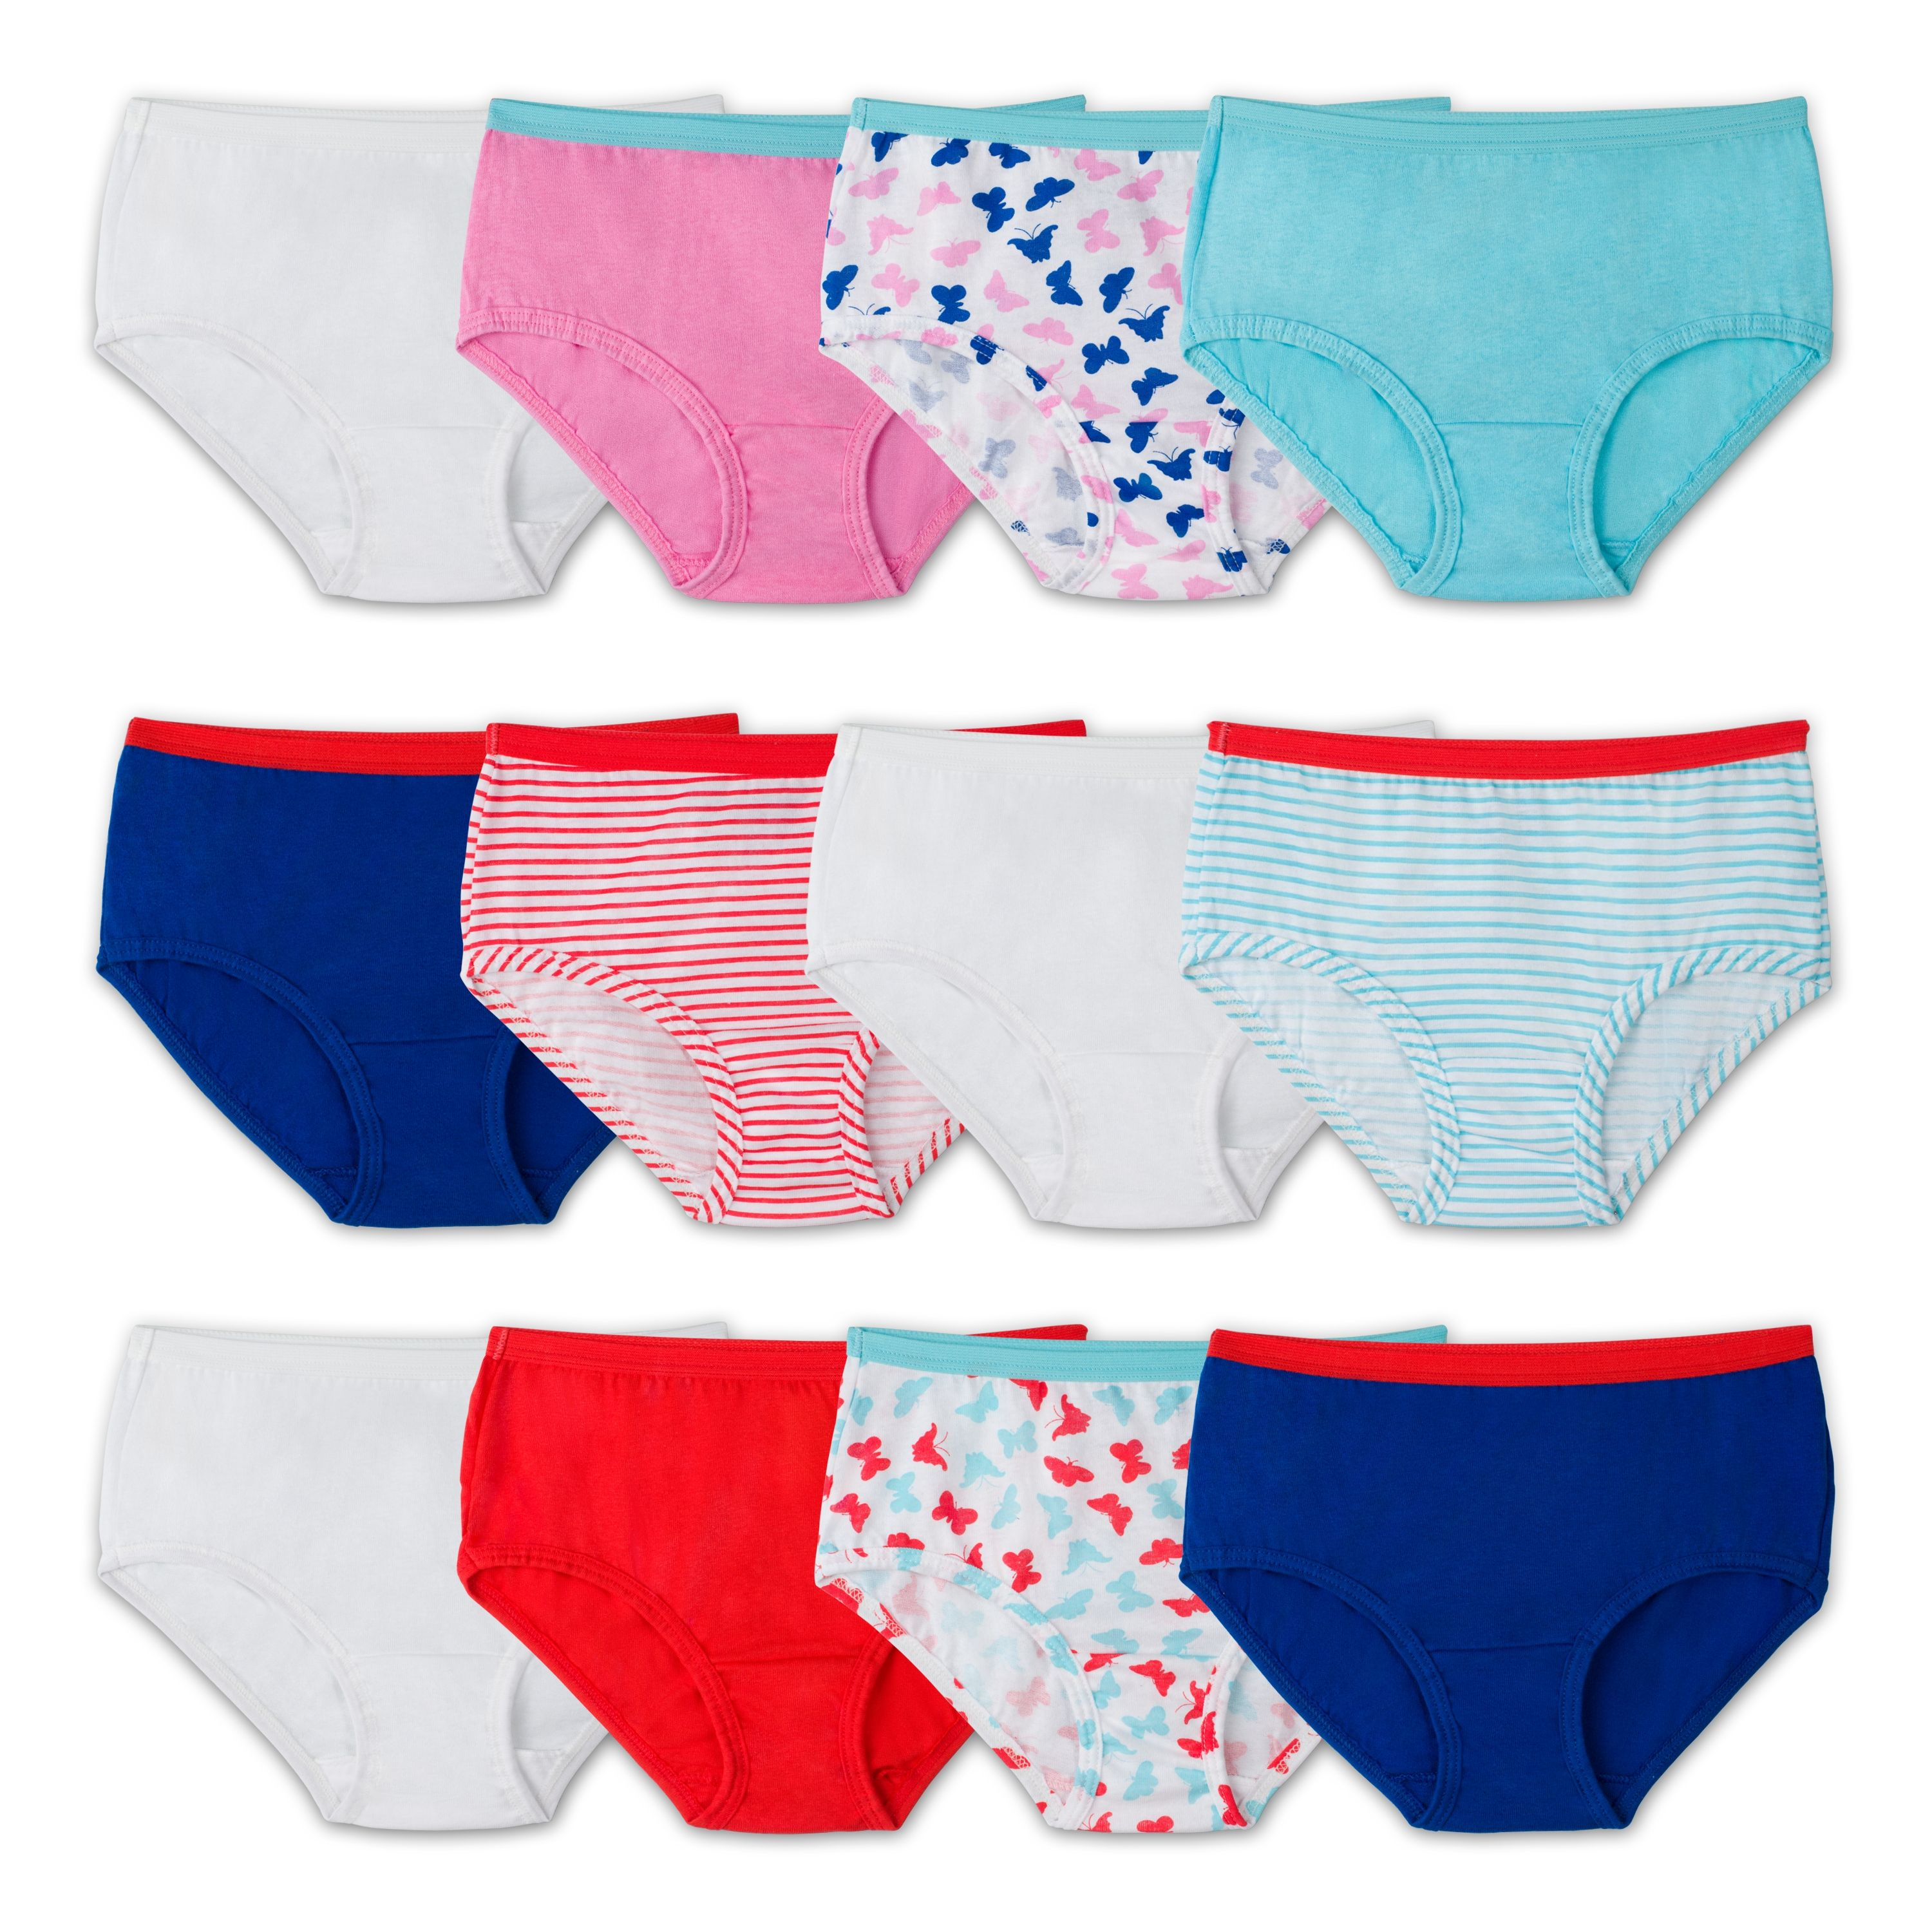 Fruit of the Loom Assorted Classic Cotton Brief, 12 Pack (Little Girls & Big Girls)